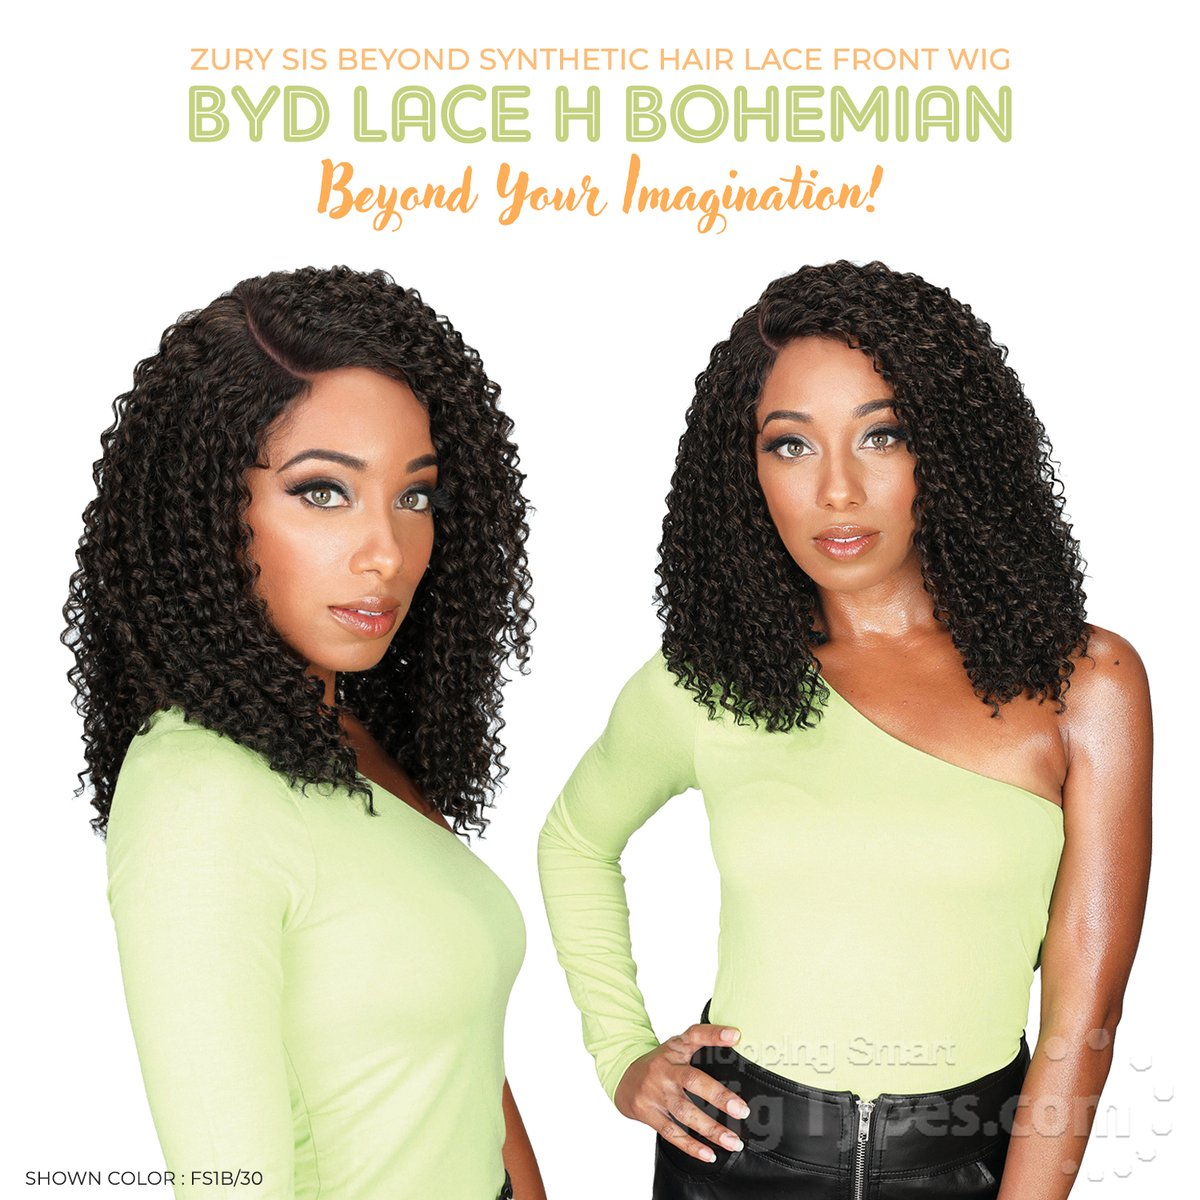 Zury Sis Beyond Synthetic Hair Lace Front Wig - BYD LACE H BOHEMIAN (https://soo.nr/D2ld)  . . . . #wigtypes #wigtypesdotcom #trendyhair #protectivestyles #blackgirlhair #instahair #Longwigs #lacefrontwig #syntheticwigs #spiralcurl #zurysis #beyondwig #bydlacehbohemianpic.twitter.com/33D04Brh6G